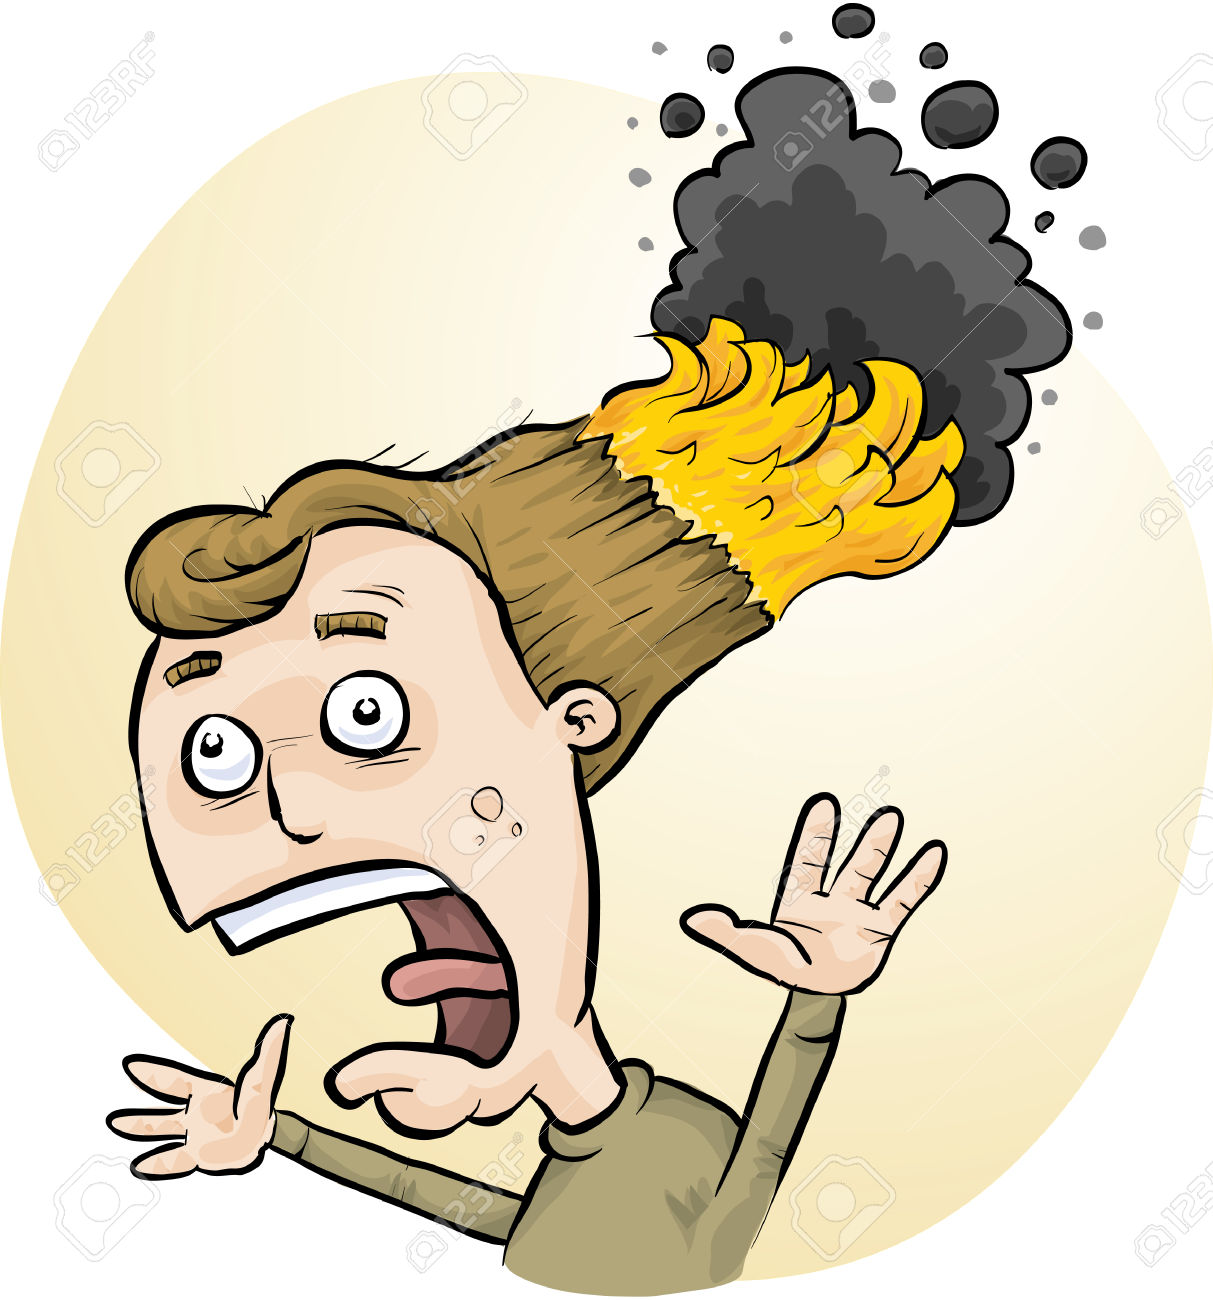 hight resolution of girl with hair on fire clipart